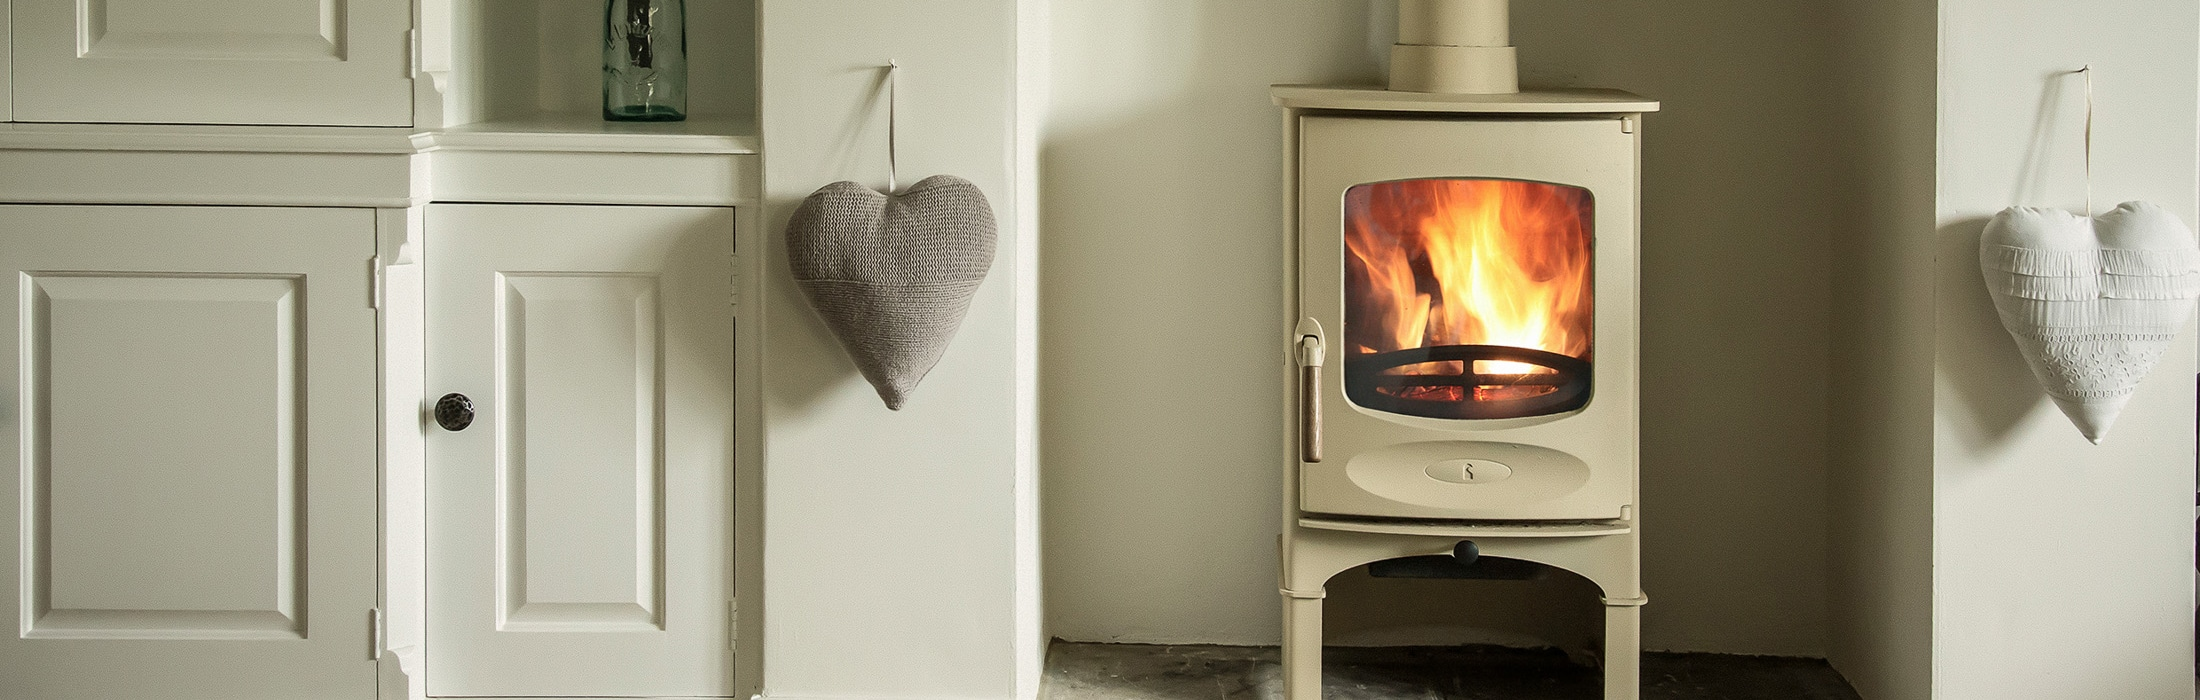 ignite stoves fireplaces lincolnshire 39 s finest collection of wood burning and multi fuel stoves. Black Bedroom Furniture Sets. Home Design Ideas